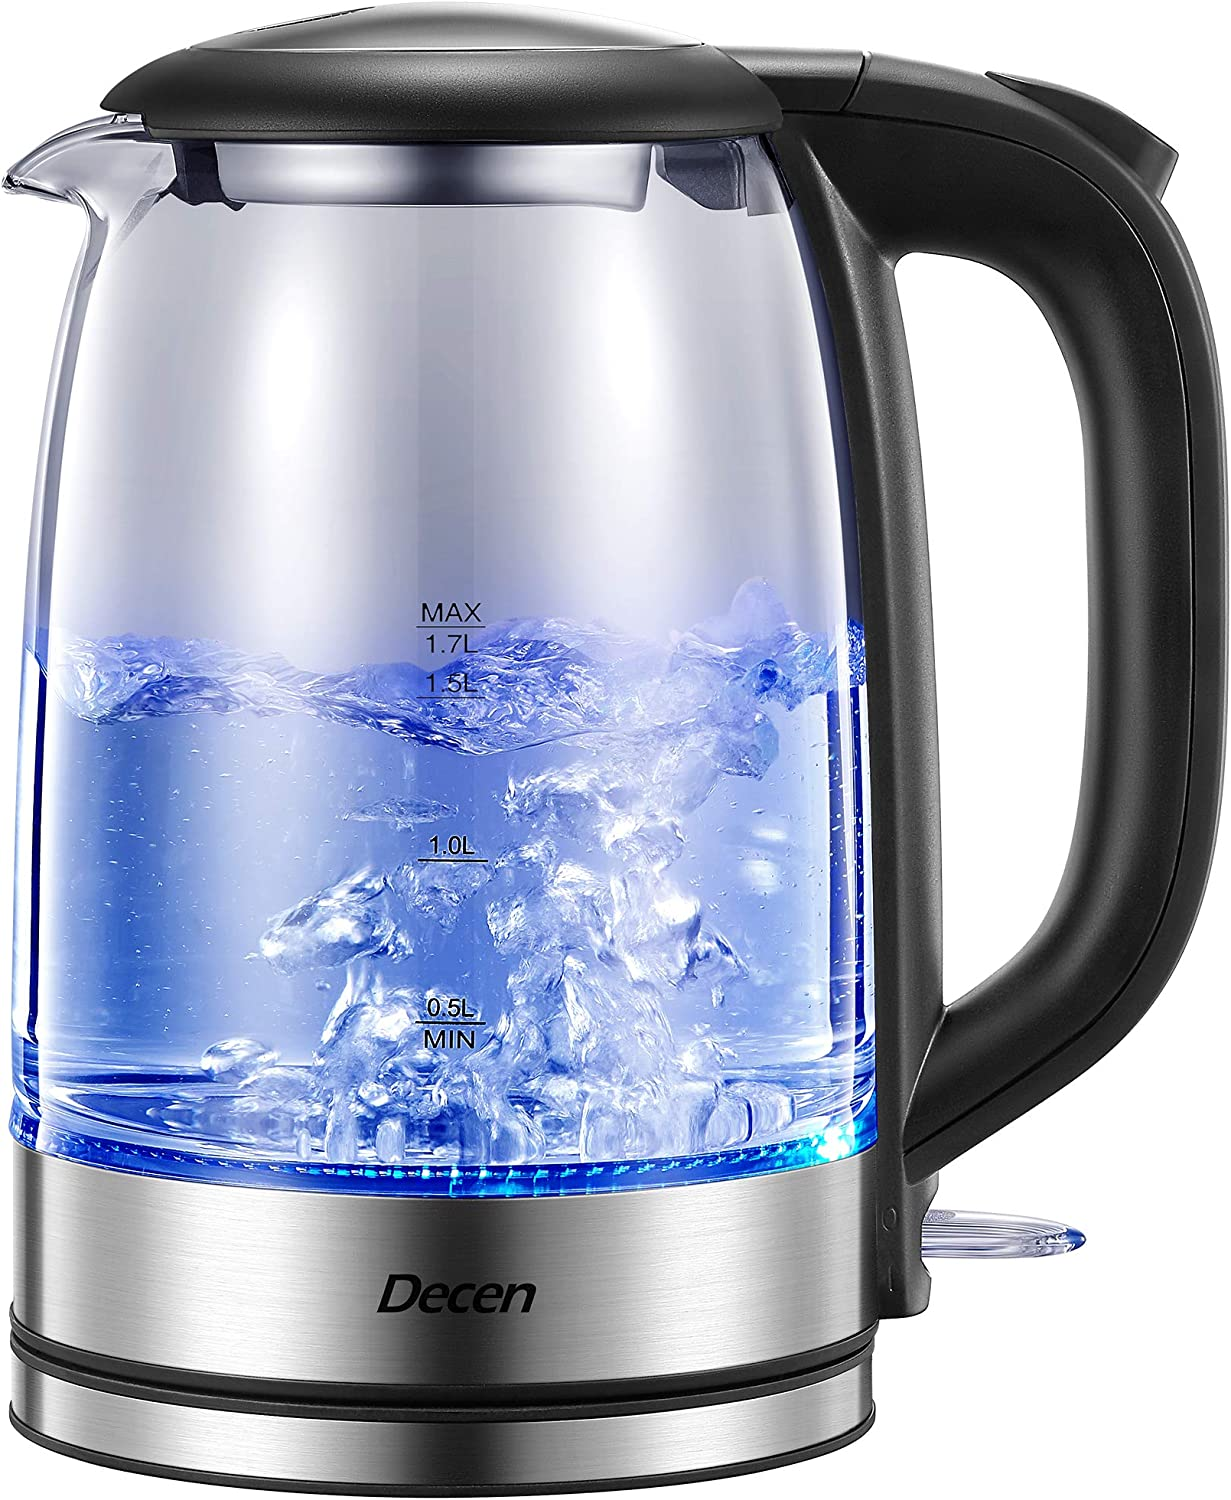 Electric Kettle, Decen 1500W Glass Electric Tea Kettle with Speedboil Tech, 1.7L (8 Cups) Water Kettle with LED Light, Auto Shut-Off And Boil-Dry Protection, Stainless Steel Lid & Bottom